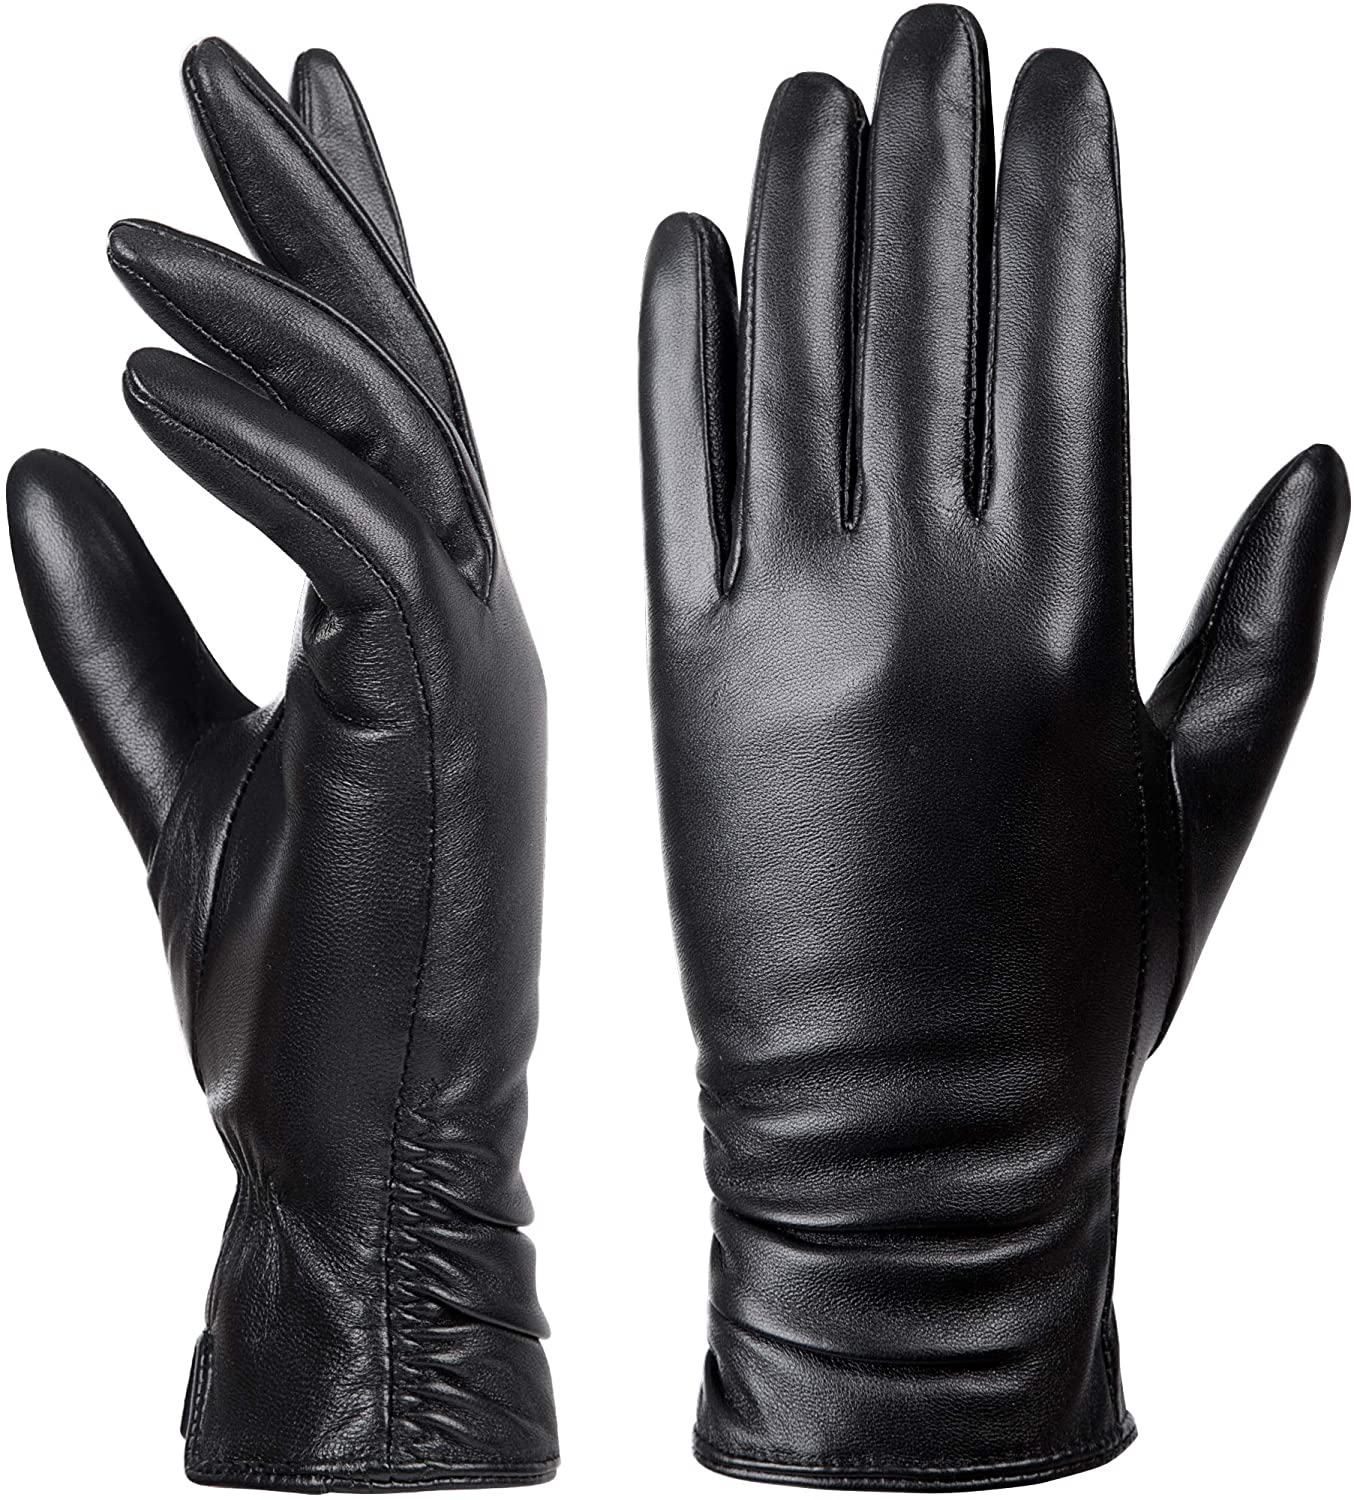 Omaha Mall Max 56% OFF Womens Winter Leather Touchscreen Lambskin Texting Warm Driving